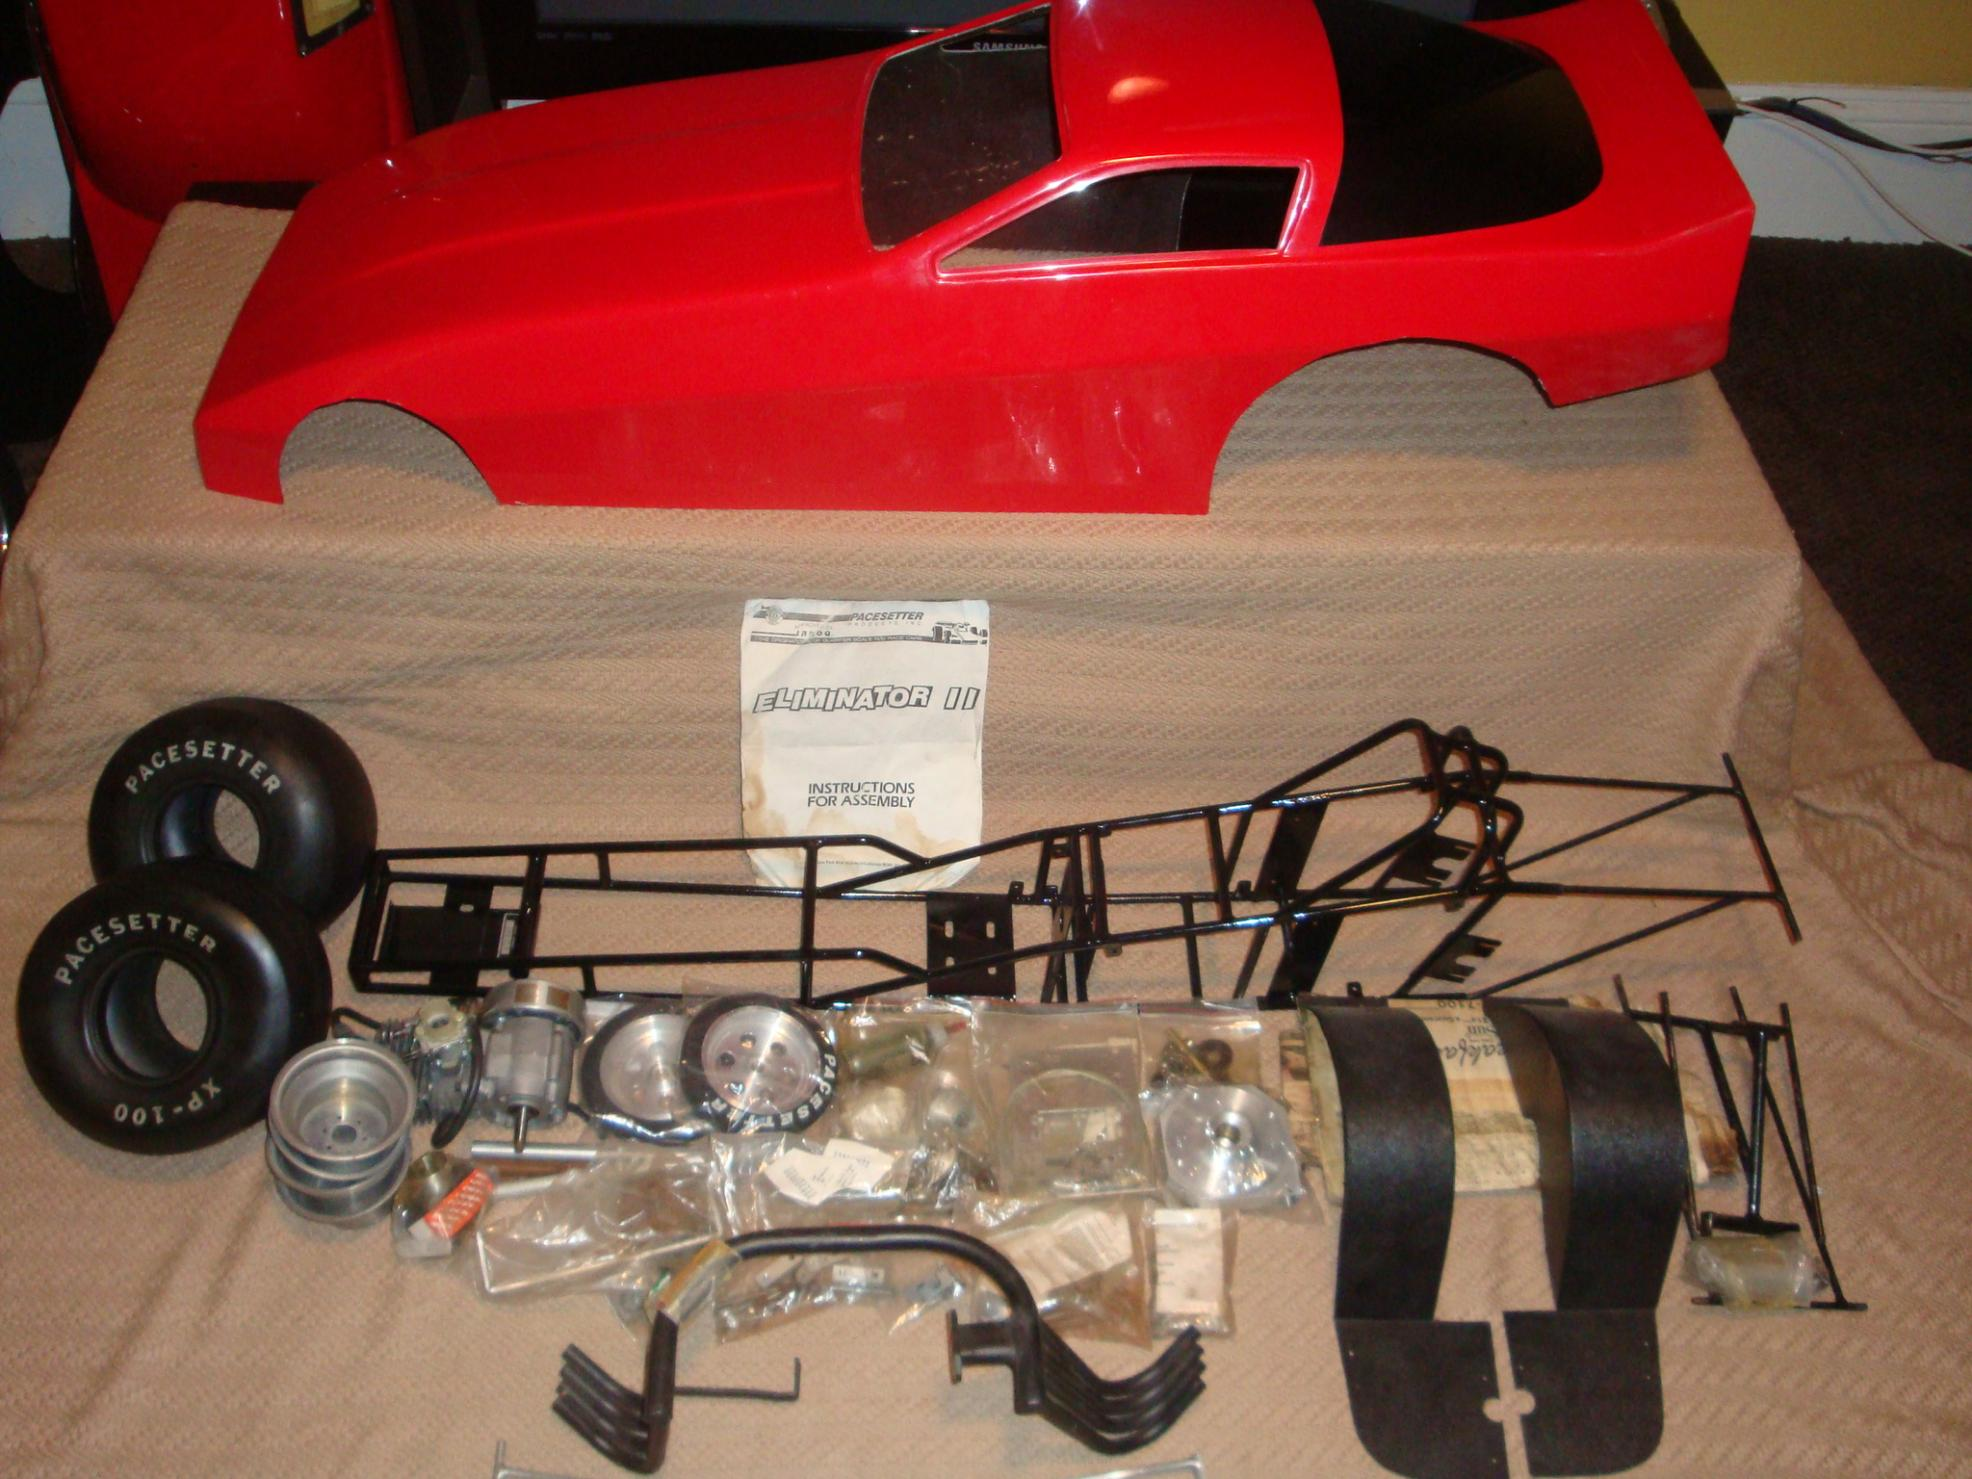 New 1/4 scale Funny car Kit - R/C Tech Forums